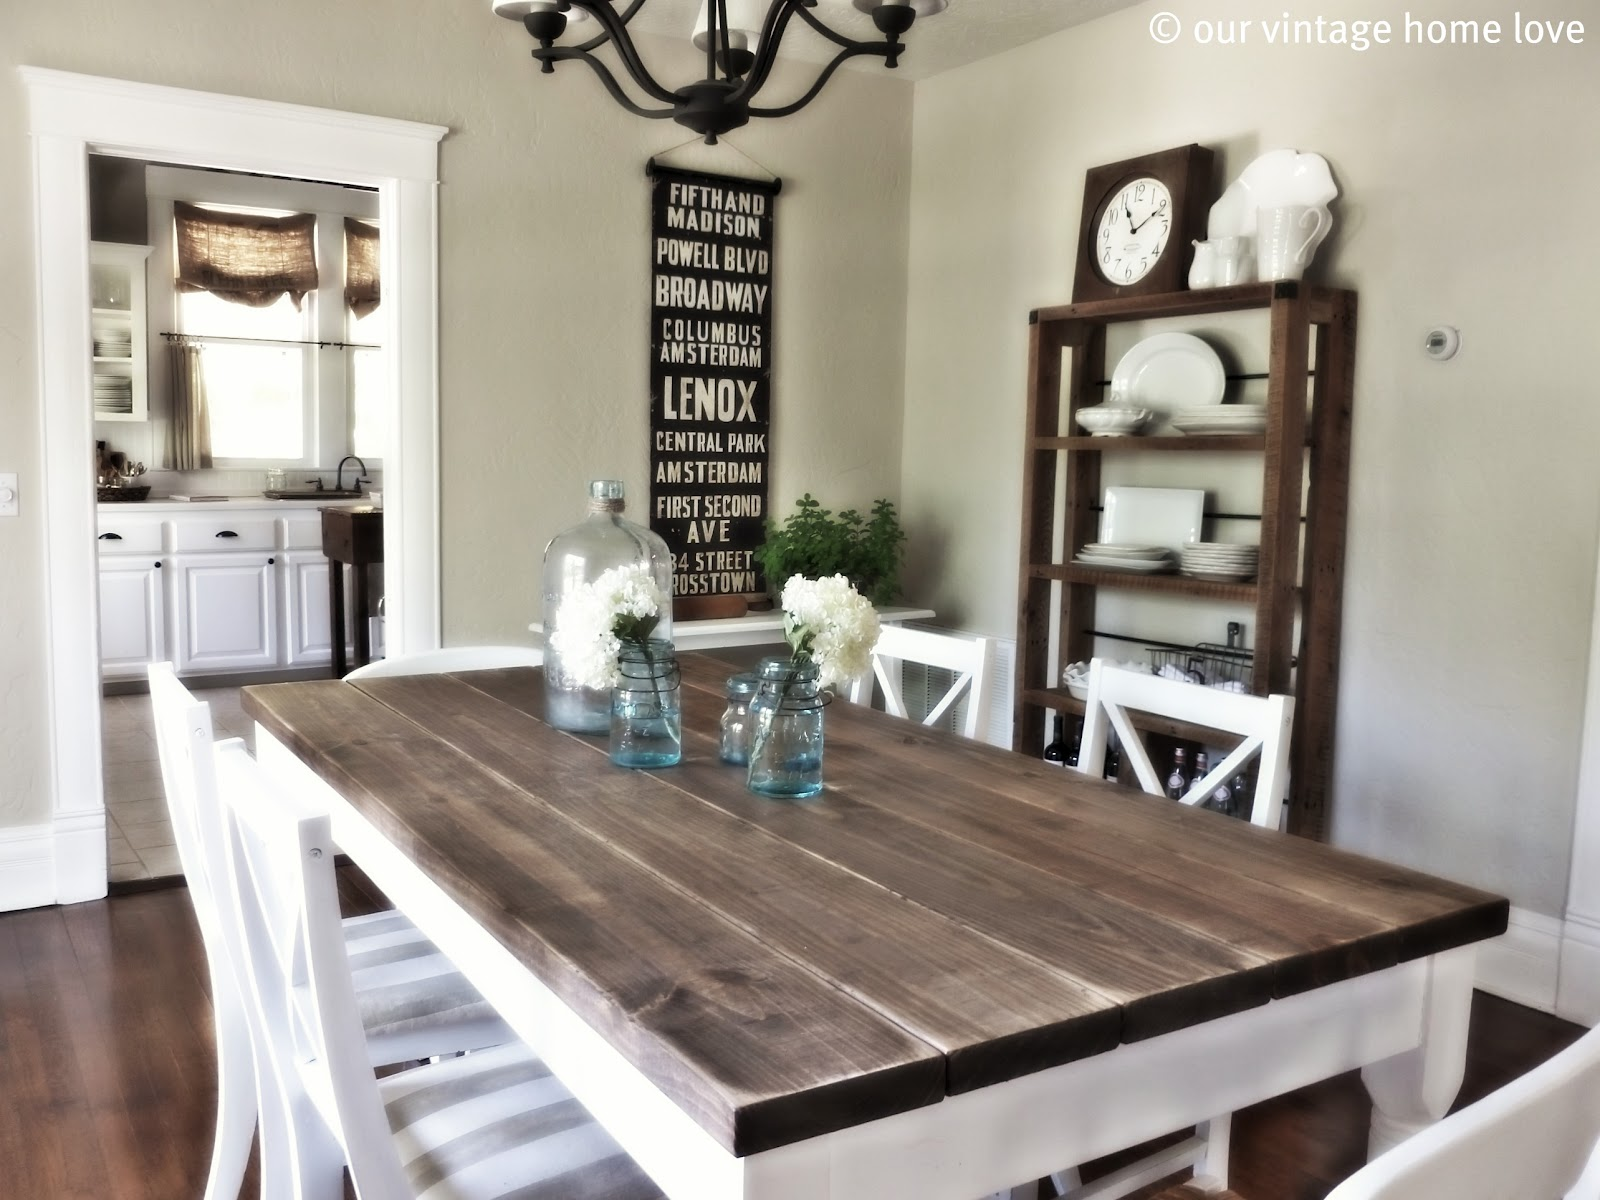 Attractive Wooden Dining Room Sets Target With White And Brown Theme